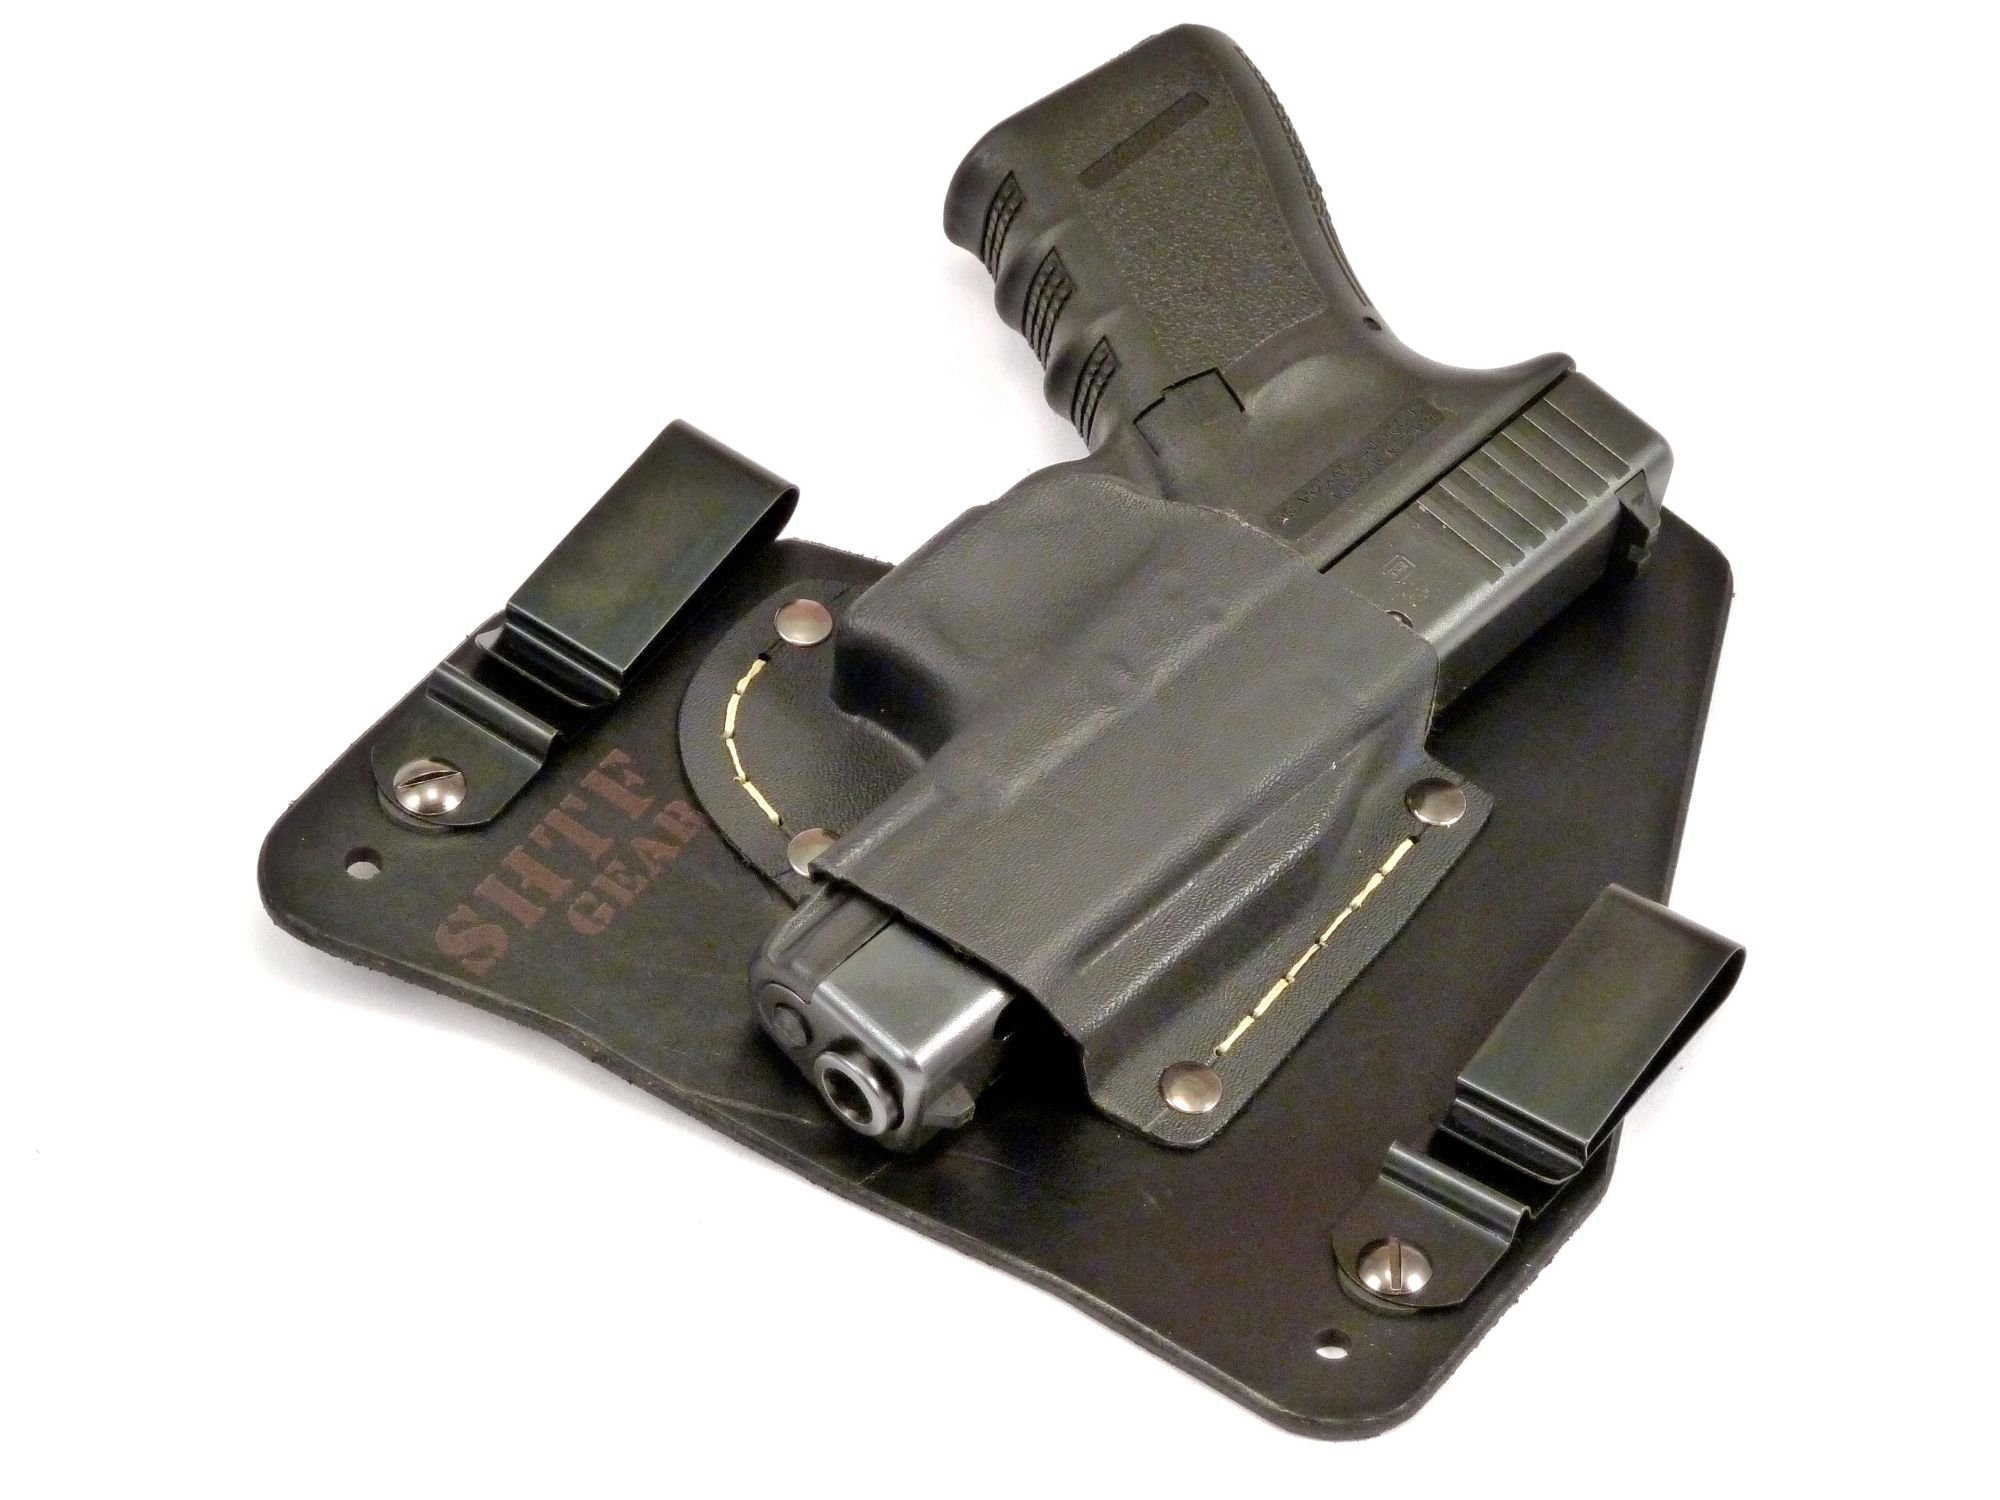 What's your favorite IWB CC holster?-glock-gun-front-right-1500.jpg